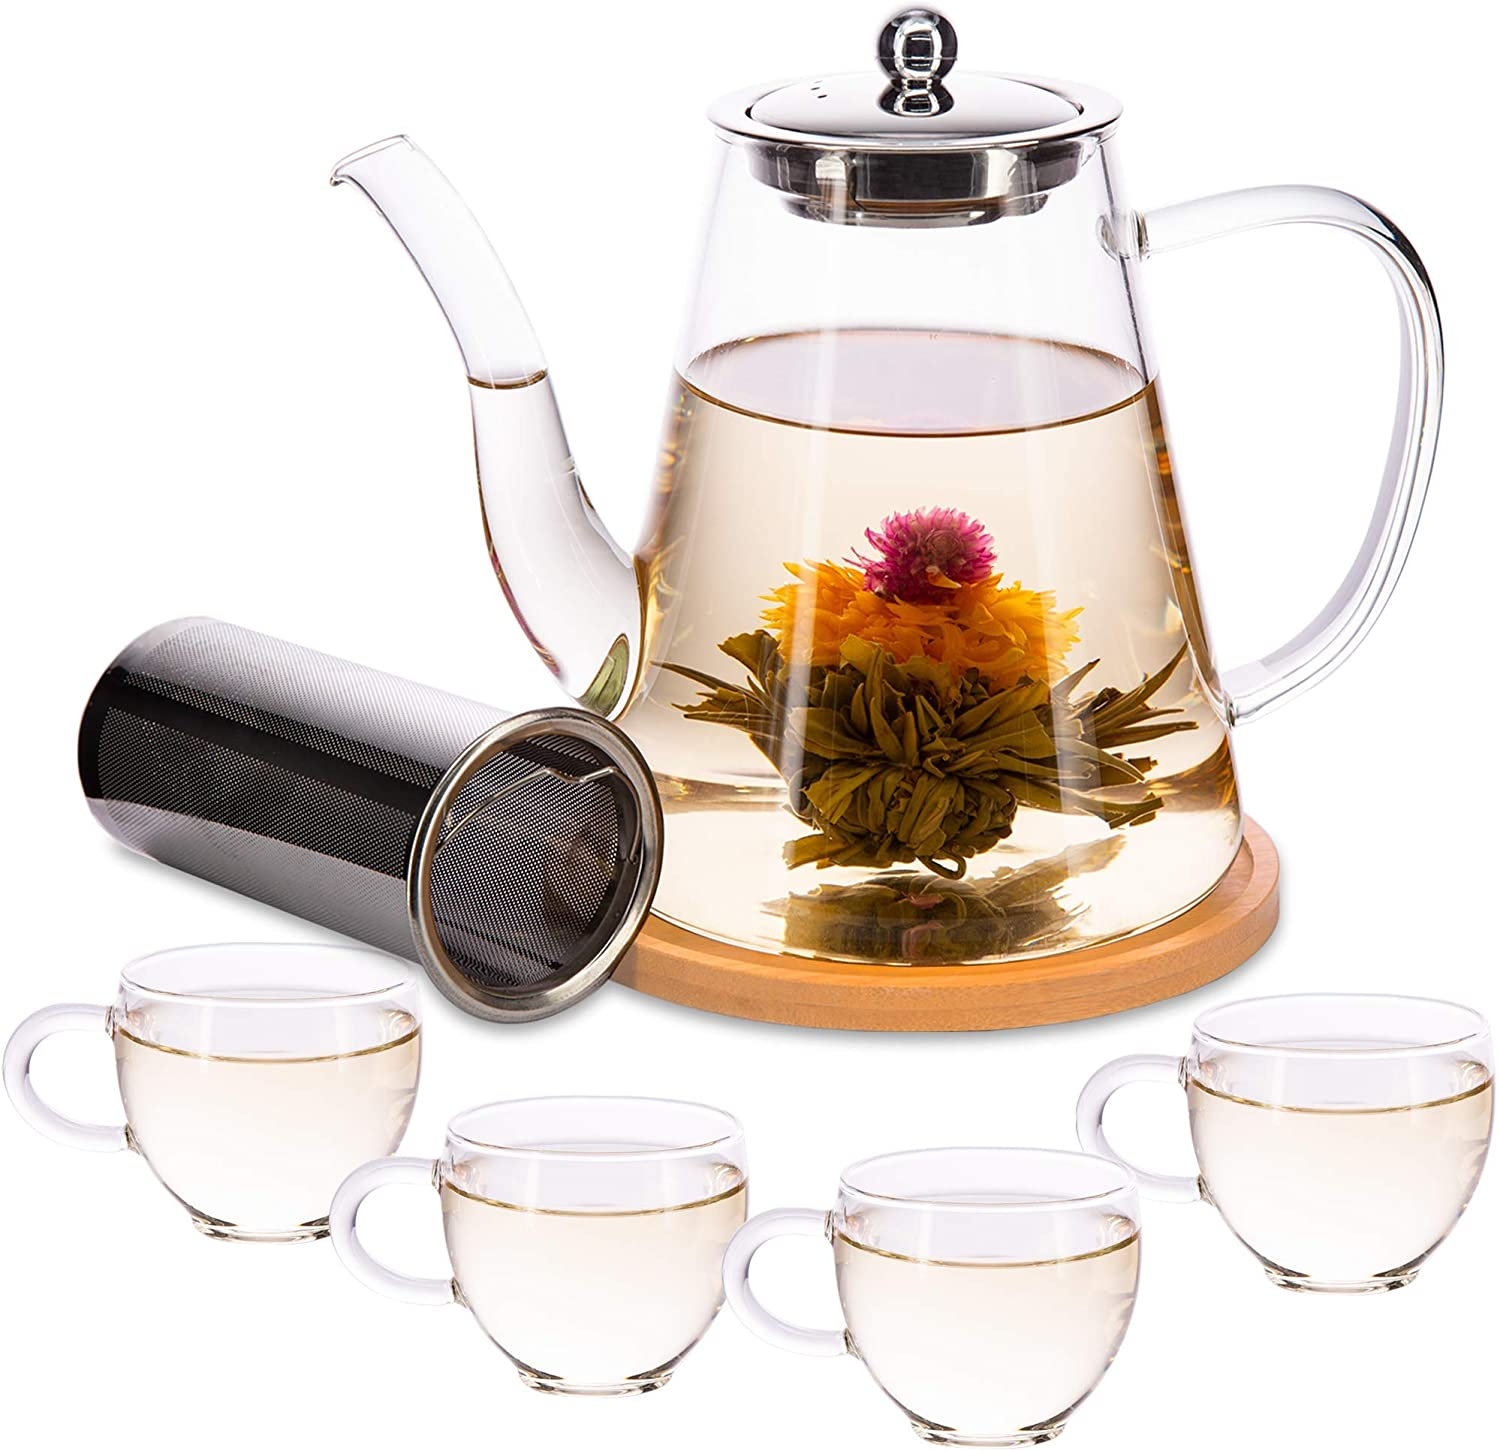 Tea Set Glass Teapot with Infuser 12 Genuine Free Selling Shipping Leaf 4 Loose for Cups